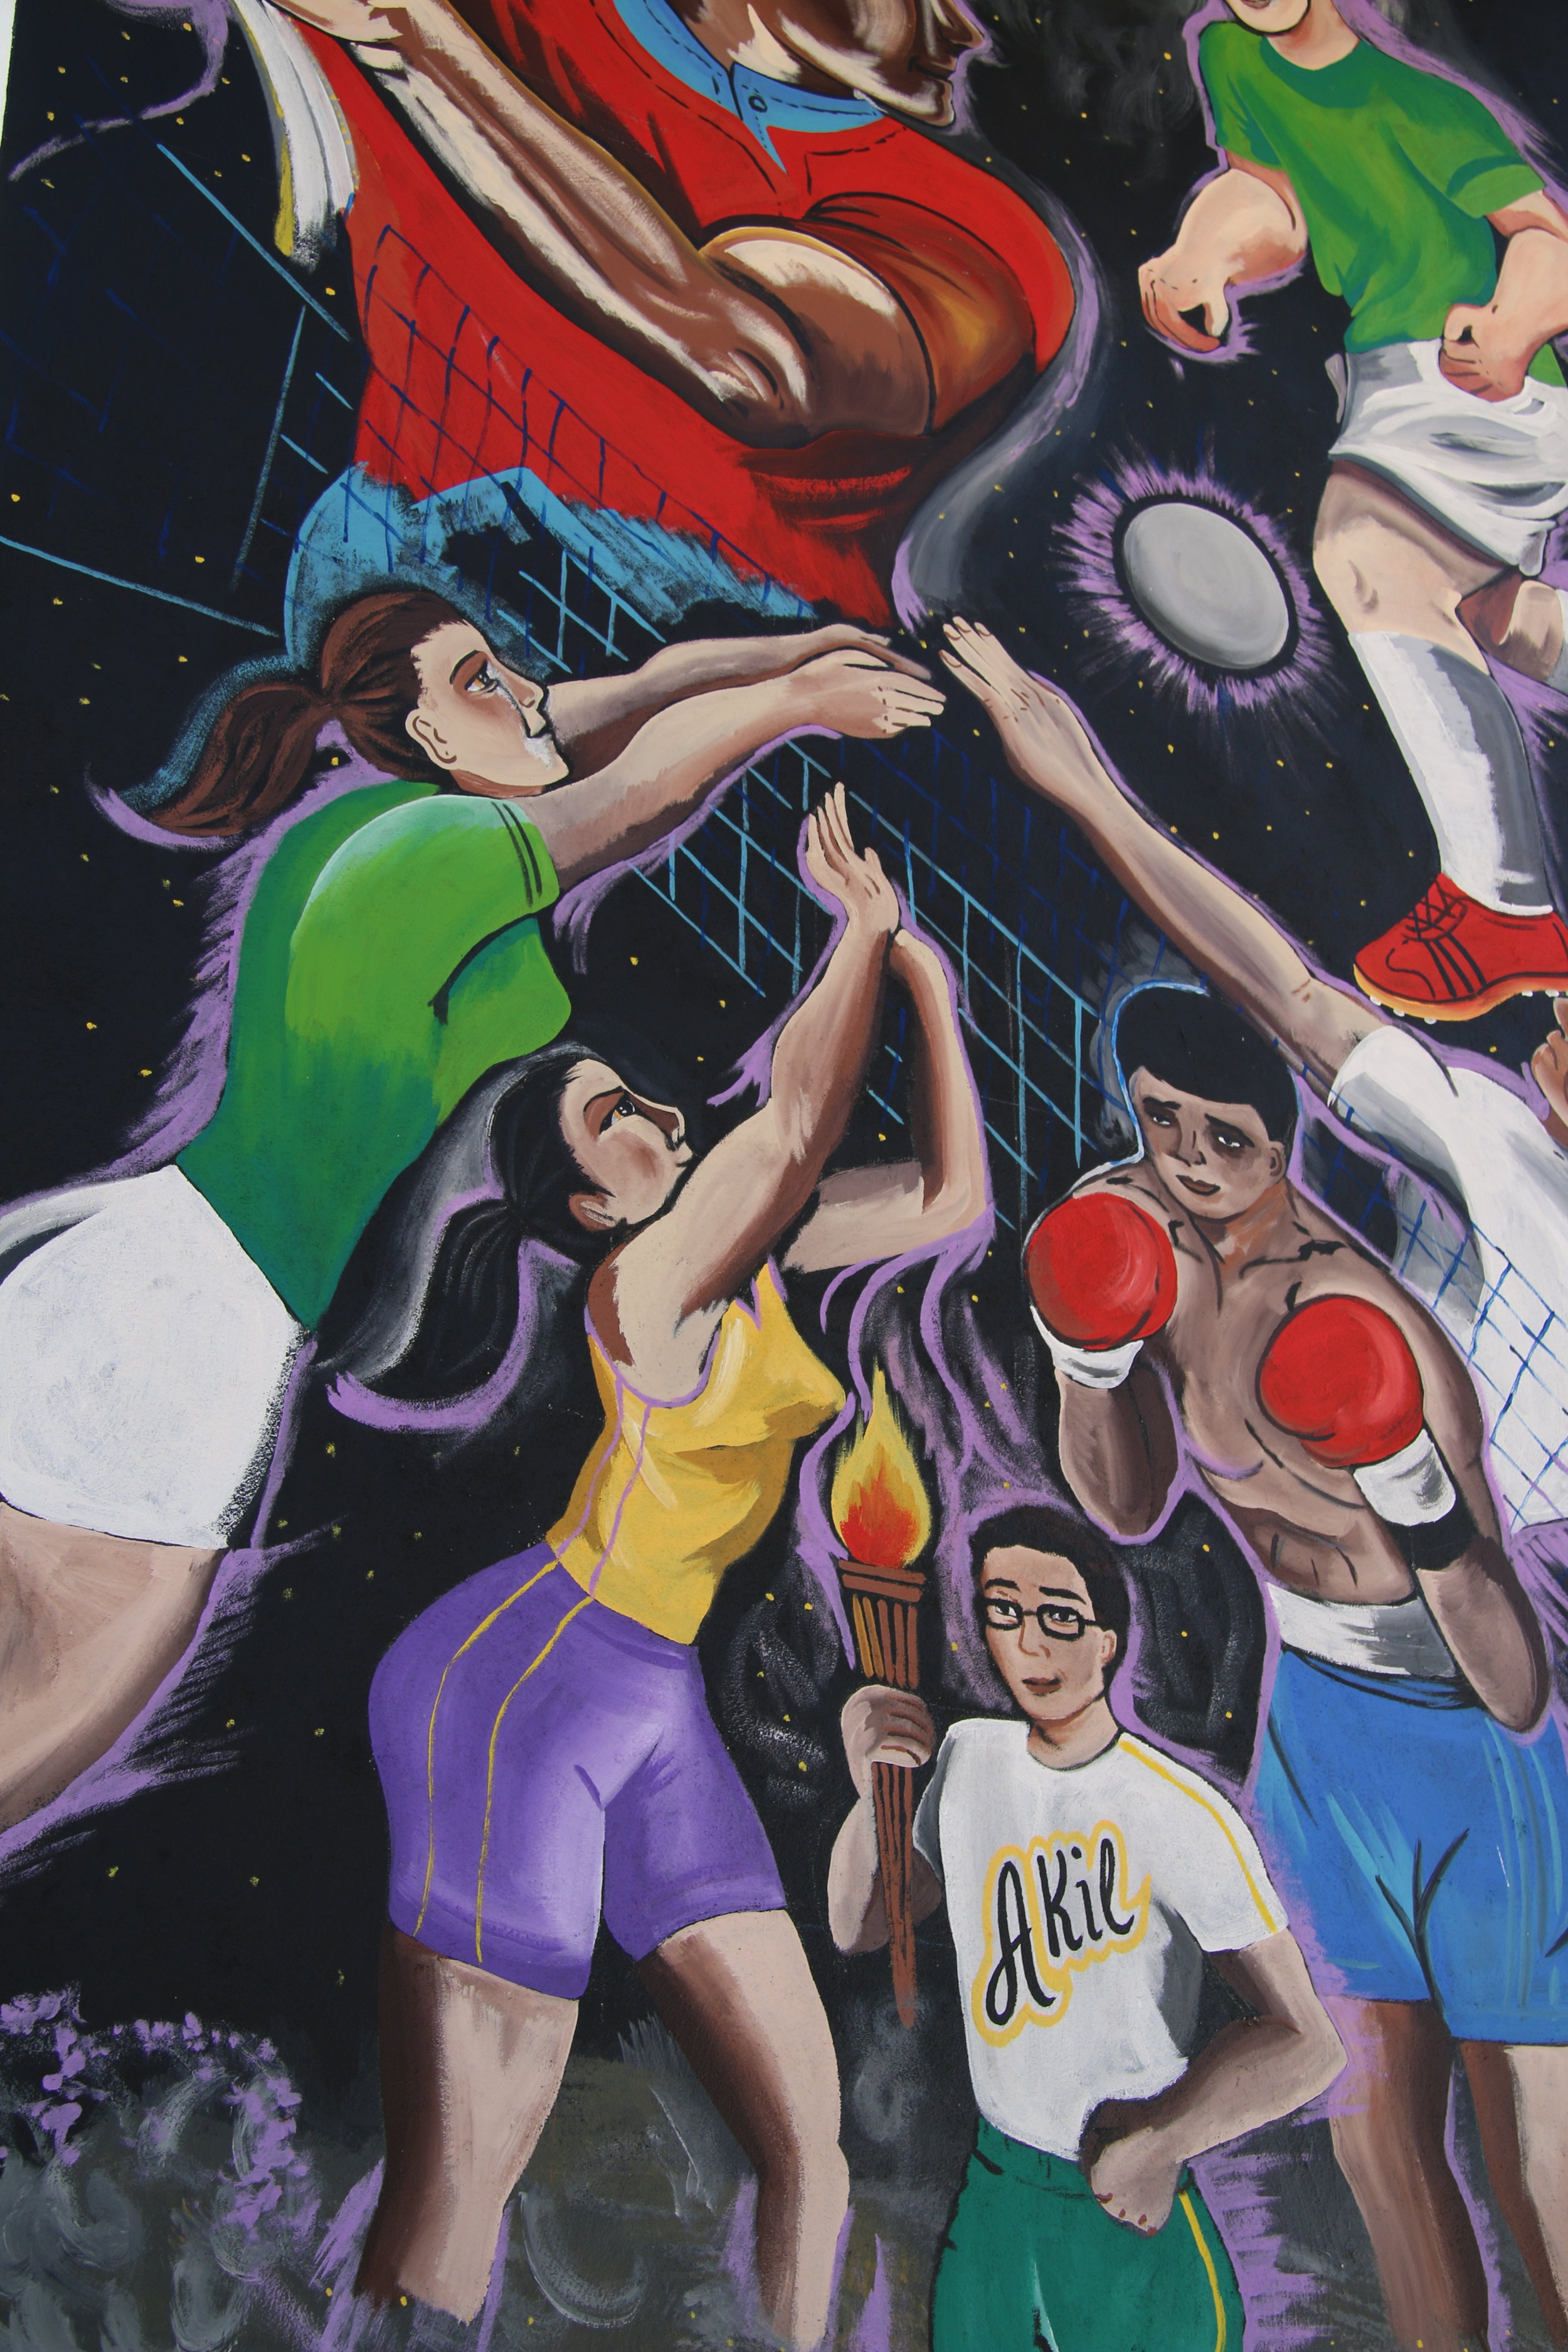 Mural detail - homage to the athletes of Akil